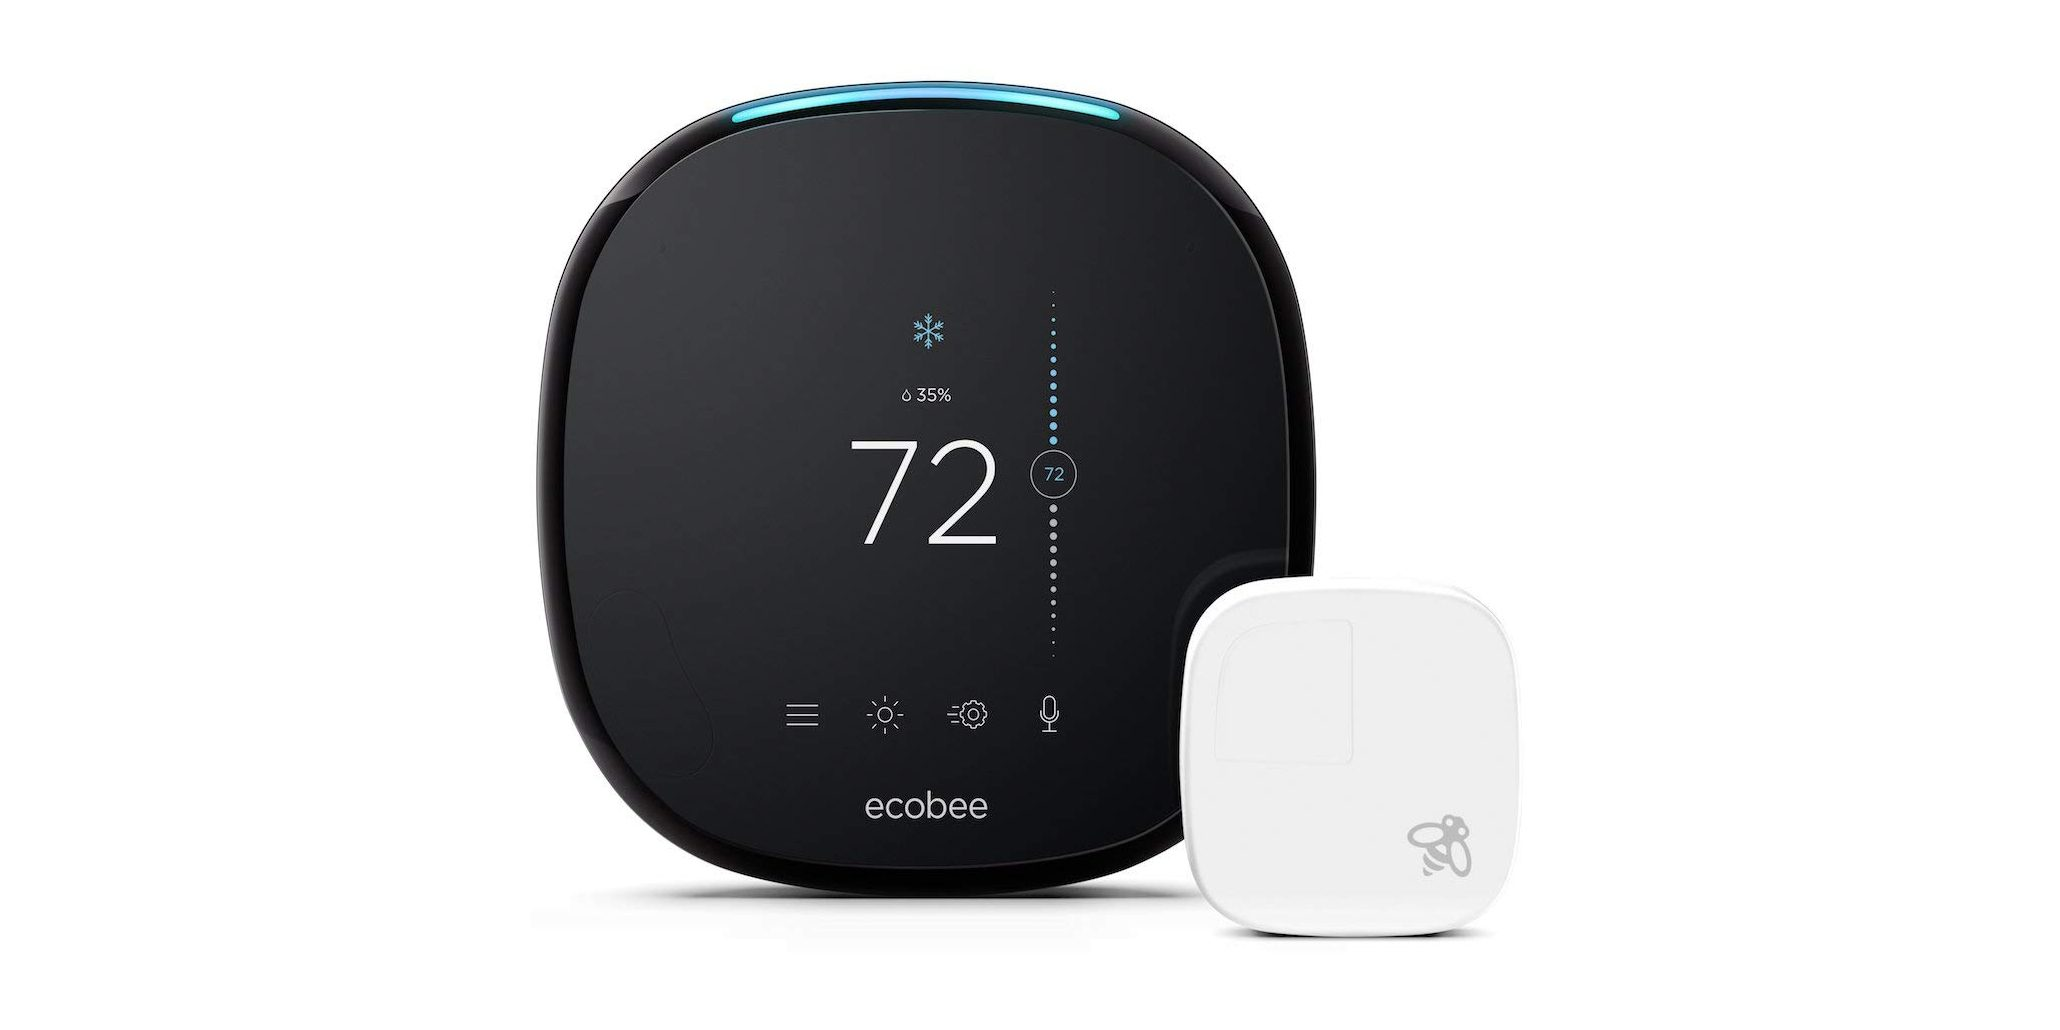 ecobee4 smart thermostat offers HomeKit support, automatic scheduling, more for $175 (Reg. $249)